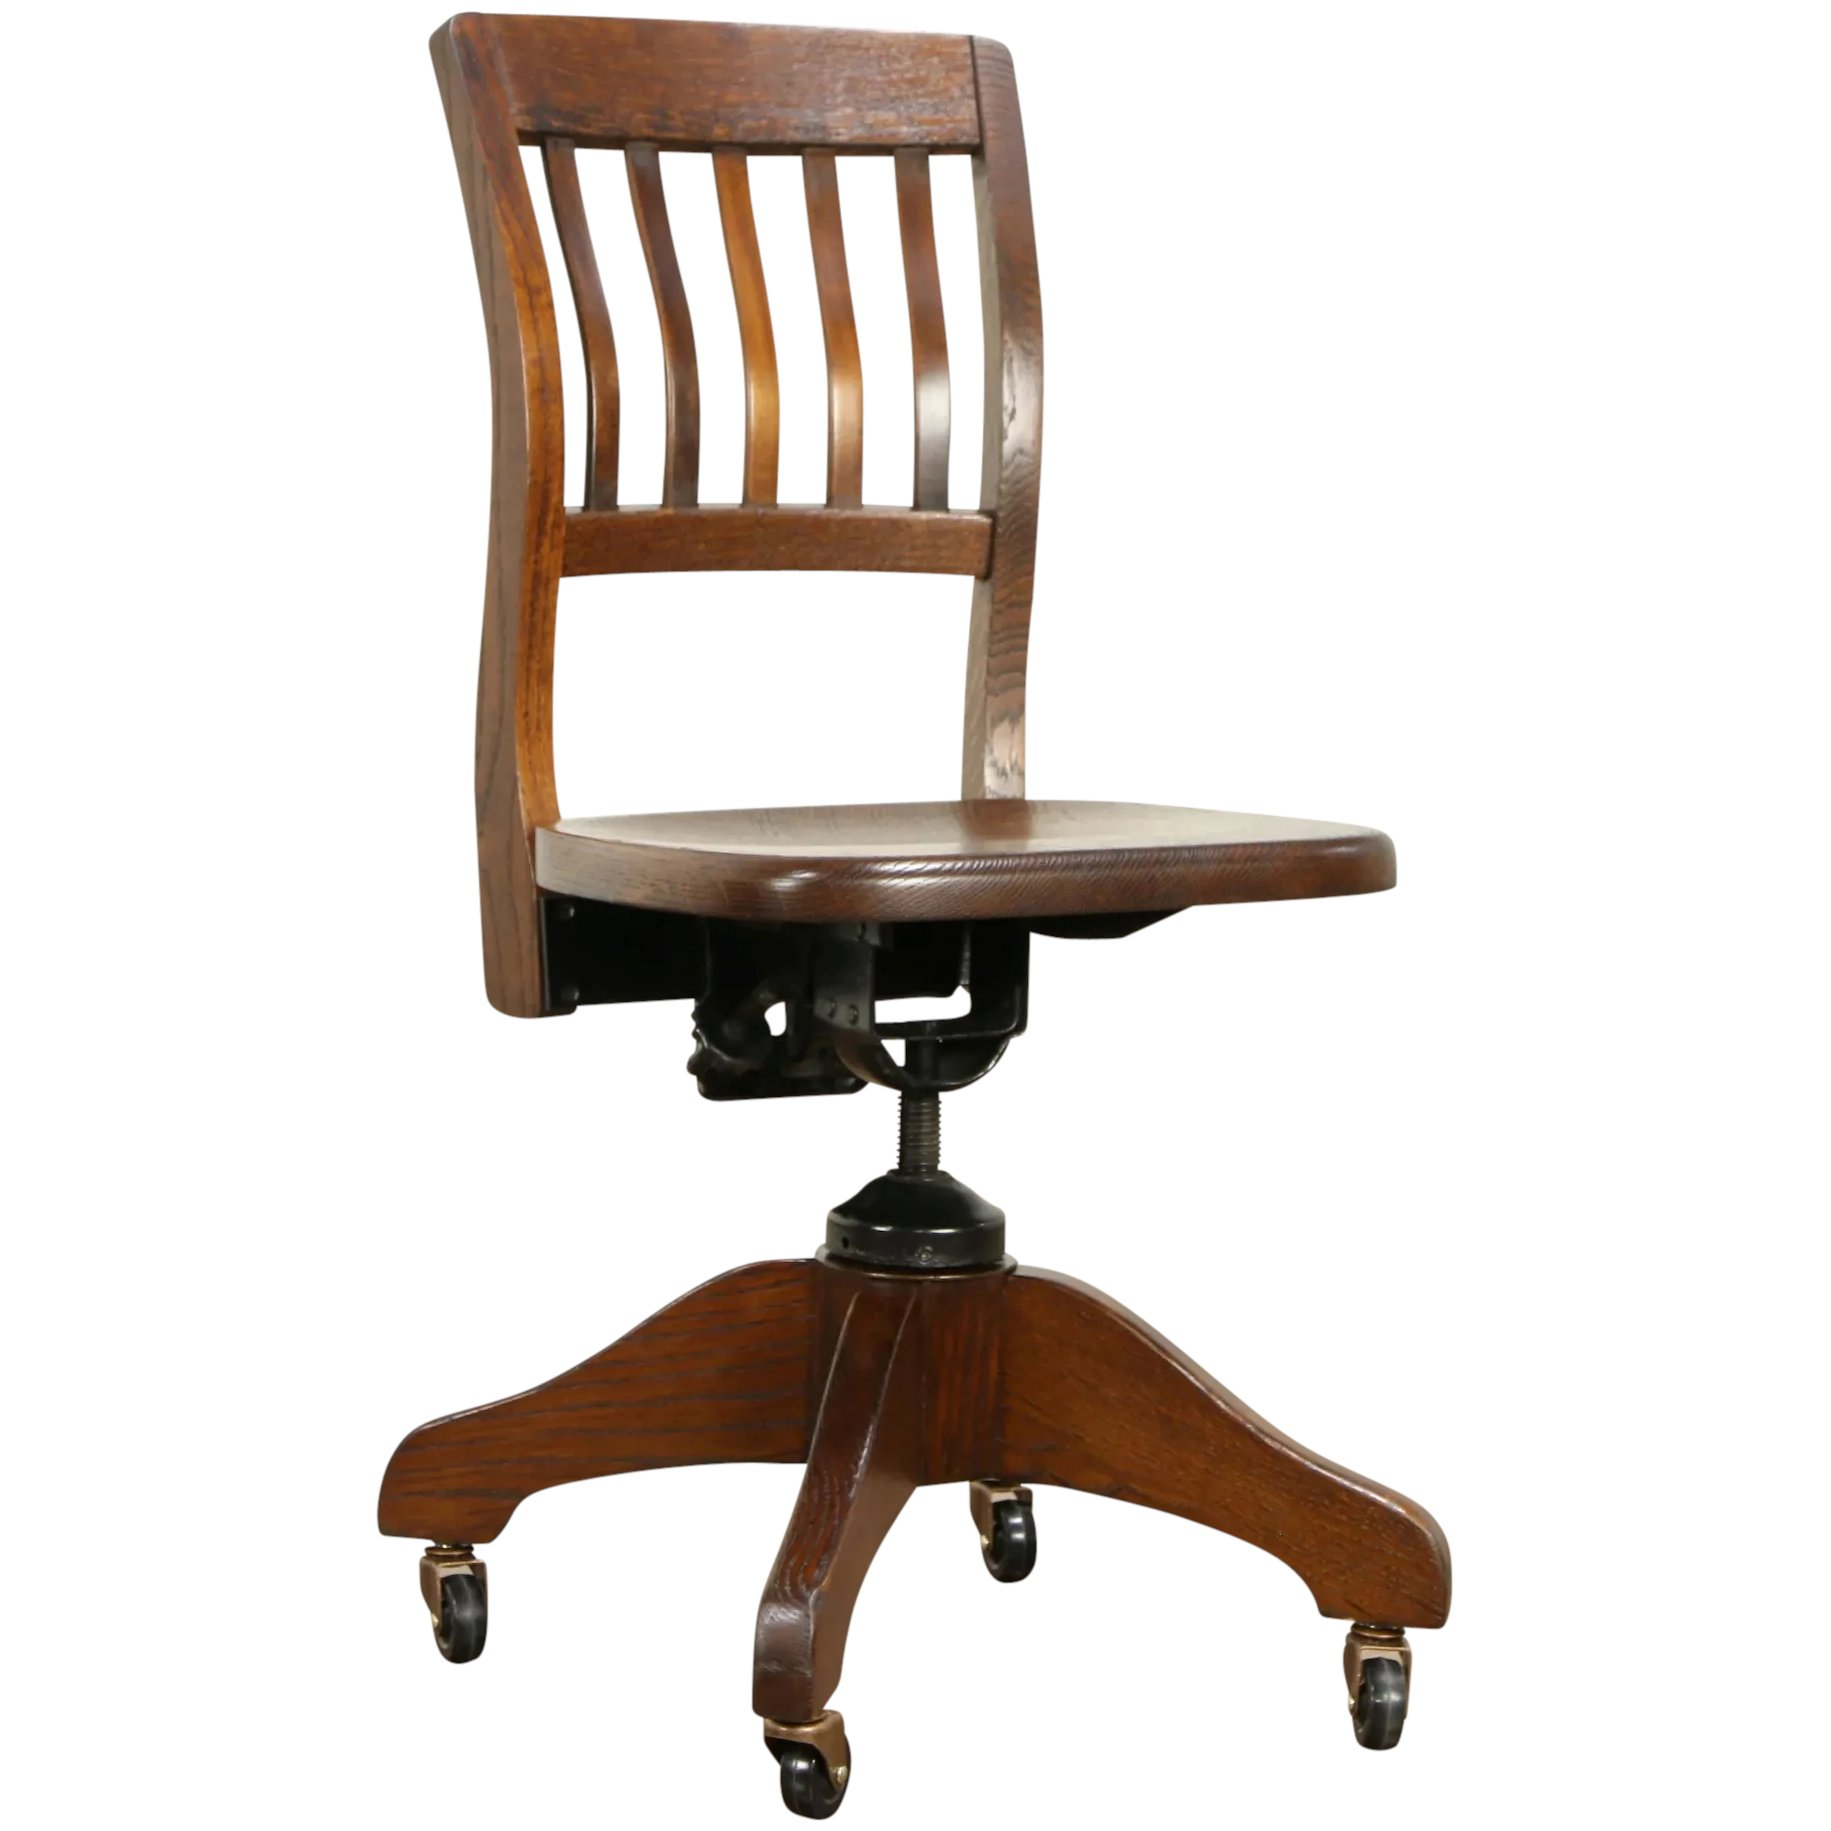 Awesome Oak Quarter Sawn Antique Swivel Adjustable Desk Chair Milwaukee 32066 Gmtry Best Dining Table And Chair Ideas Images Gmtryco